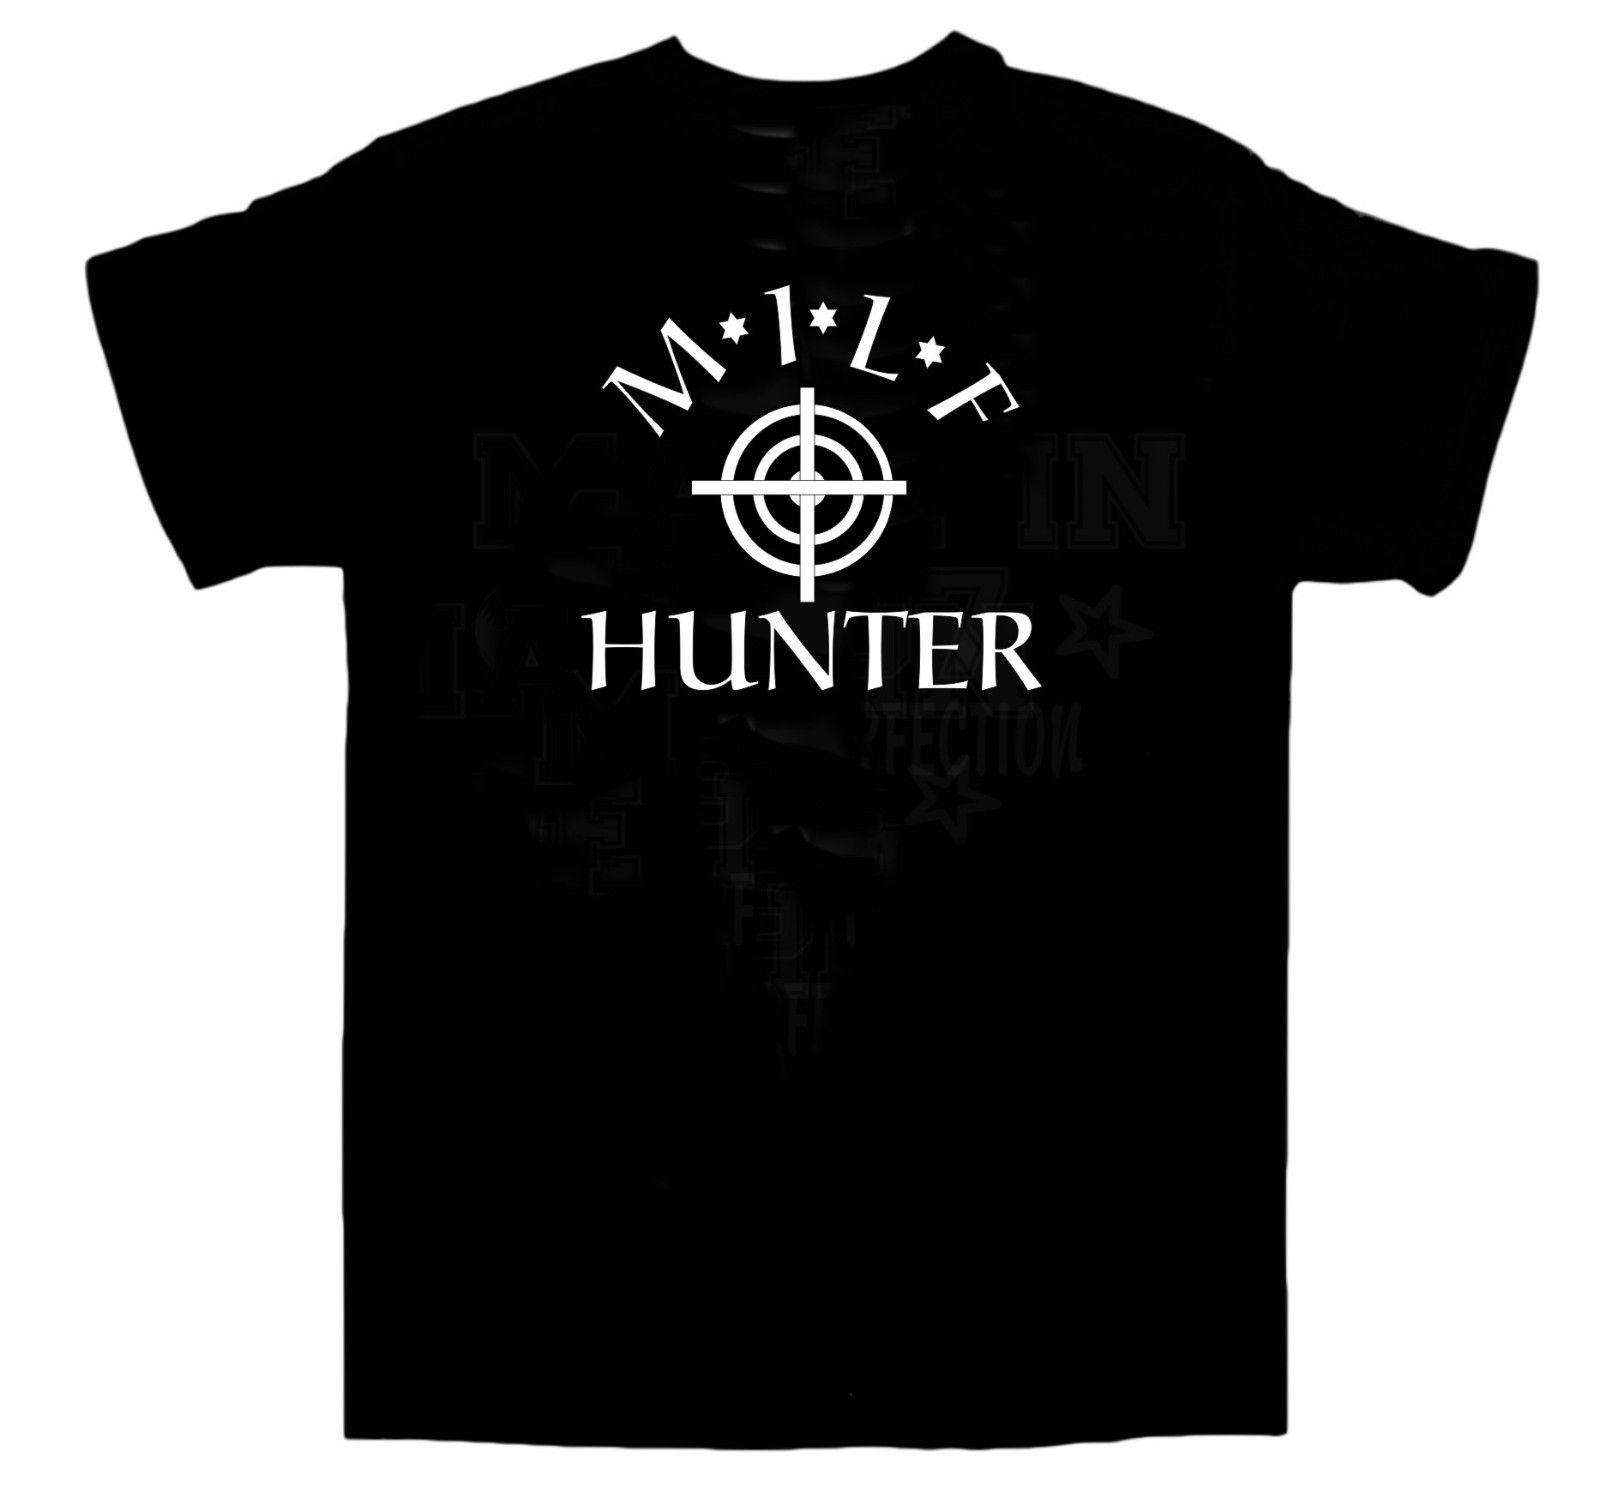 MILF Hunter T Shirt Funny Sex BBQ Rude Party American Pie Size XLBrand  Shirts Jeans Print Funny T Shirt Slogans Shirt Shirt From Whitecup, $11.78|  DHgate.